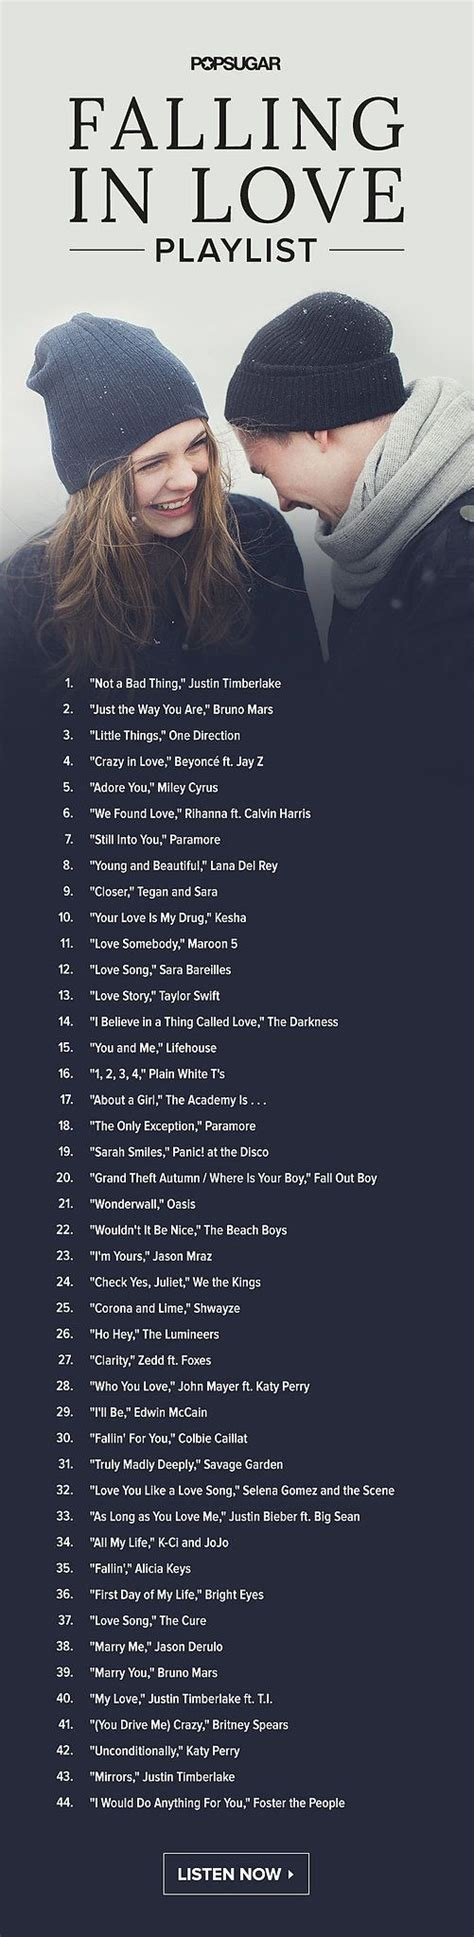 perfect cuddling couch 44 songs perfect for falling in love songs